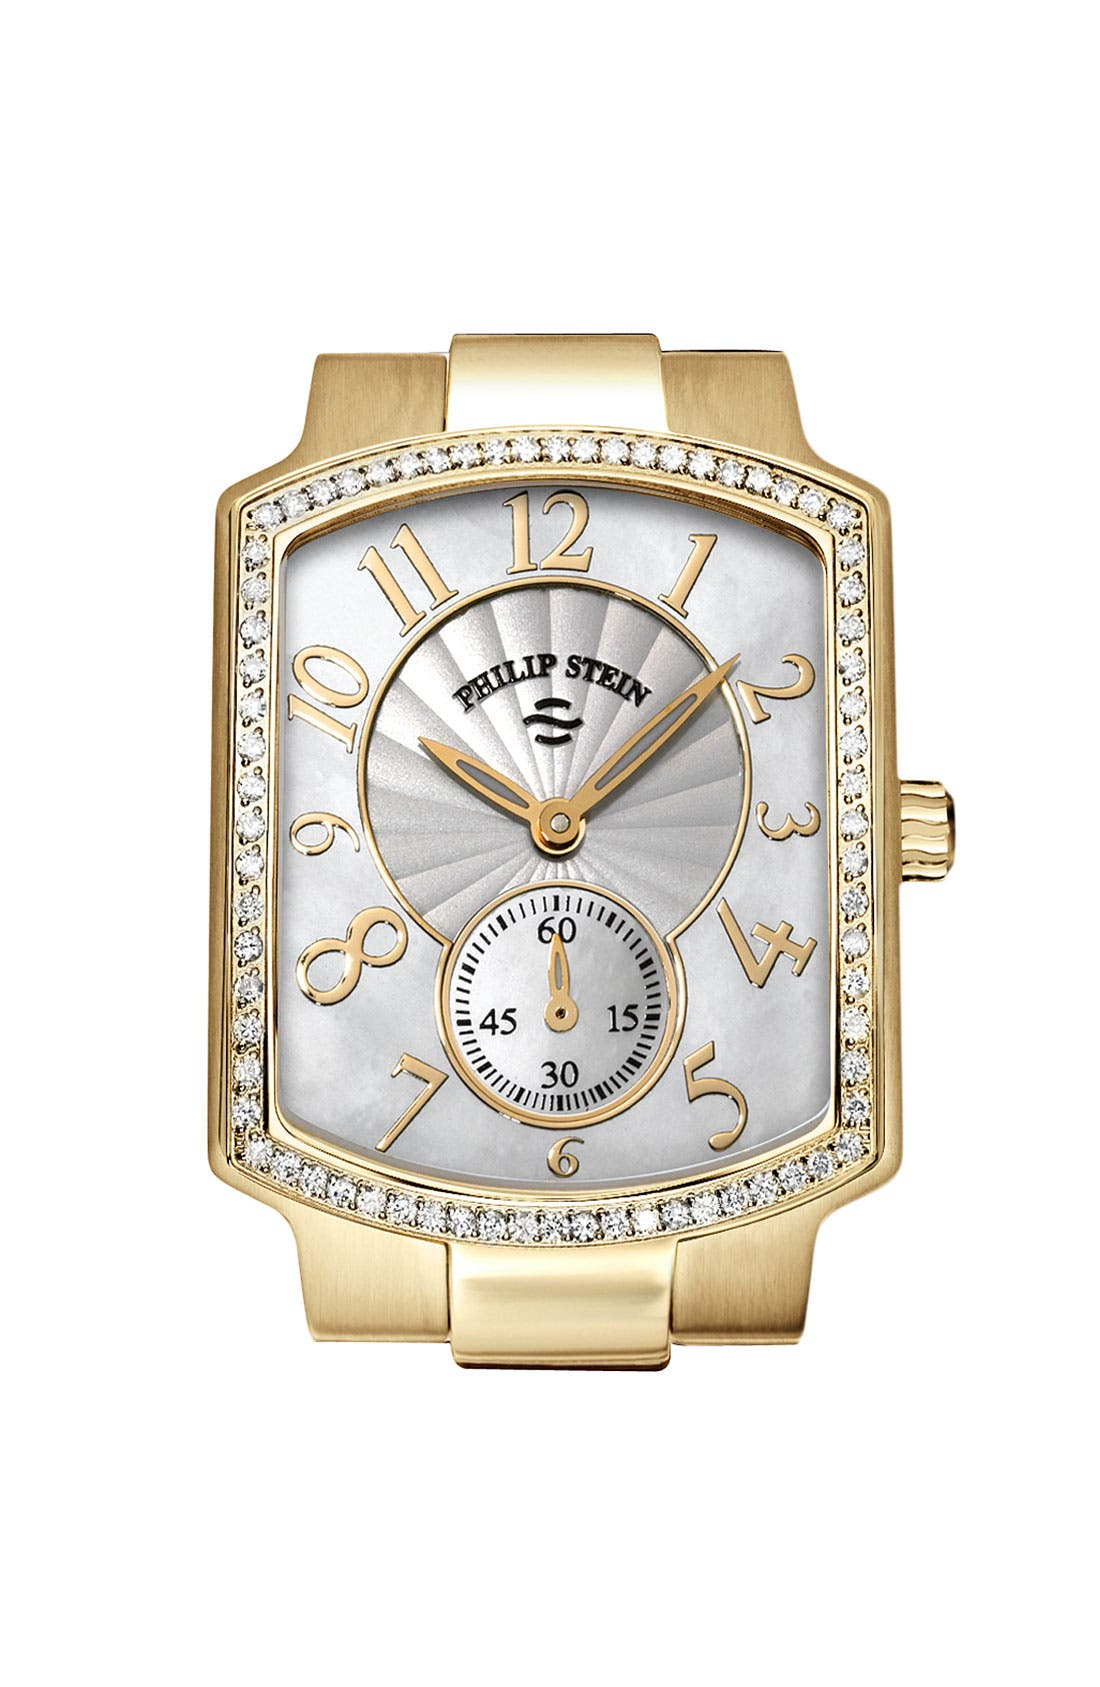 Alternate Image 1 Selected - Philip Stein® 'Classic' Ladies' Small Diamond Watch Case, 29mm x 37mm